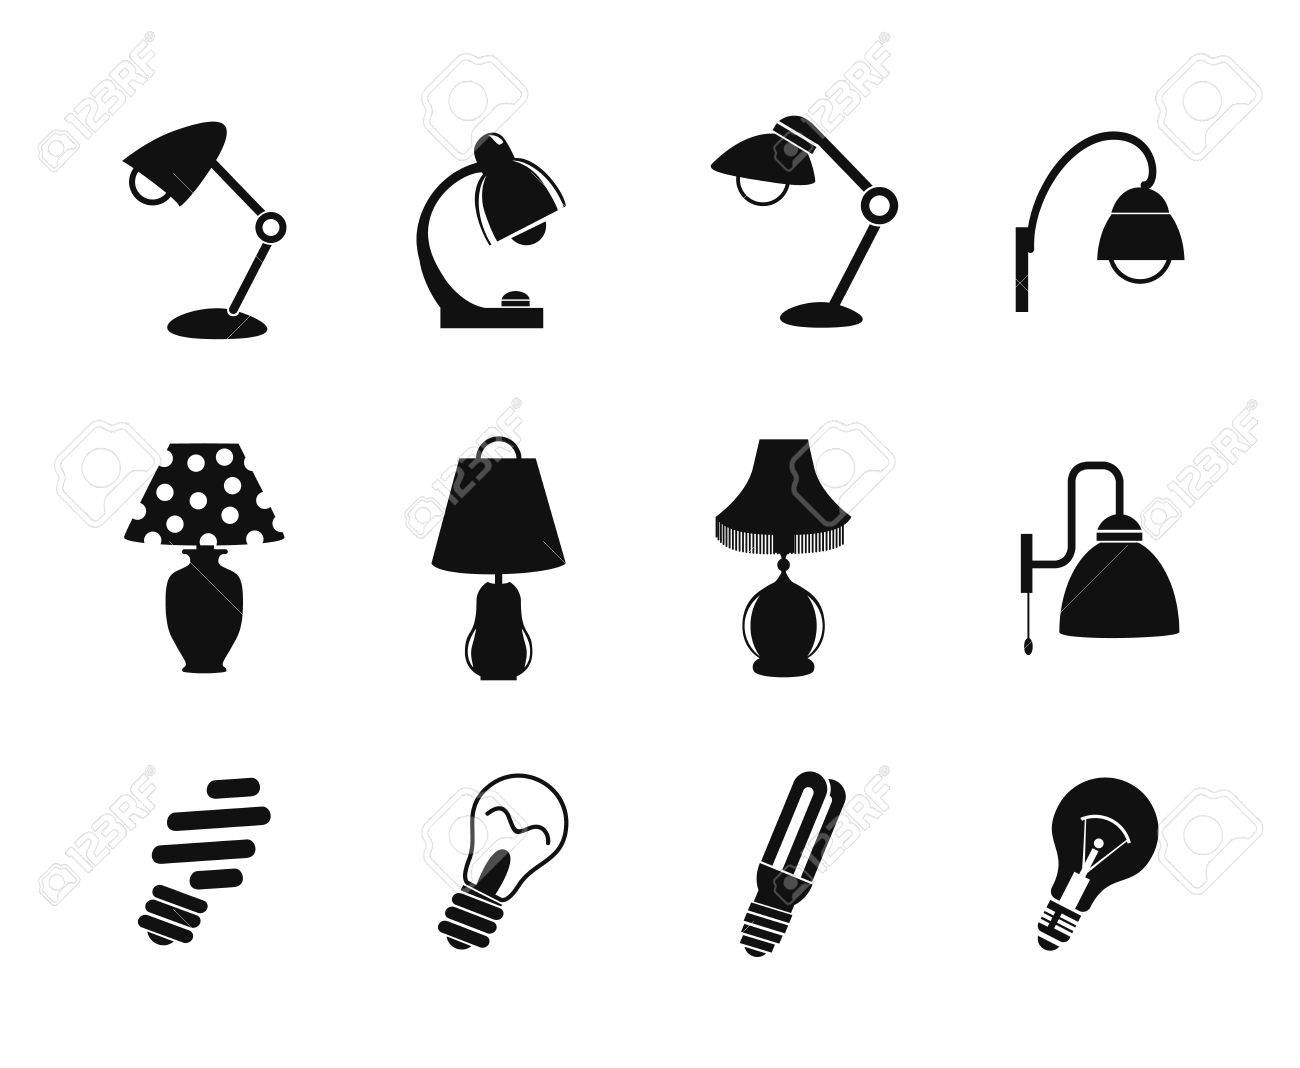 Table Lamp And Light Icon Simple Style Black Silhouette On A